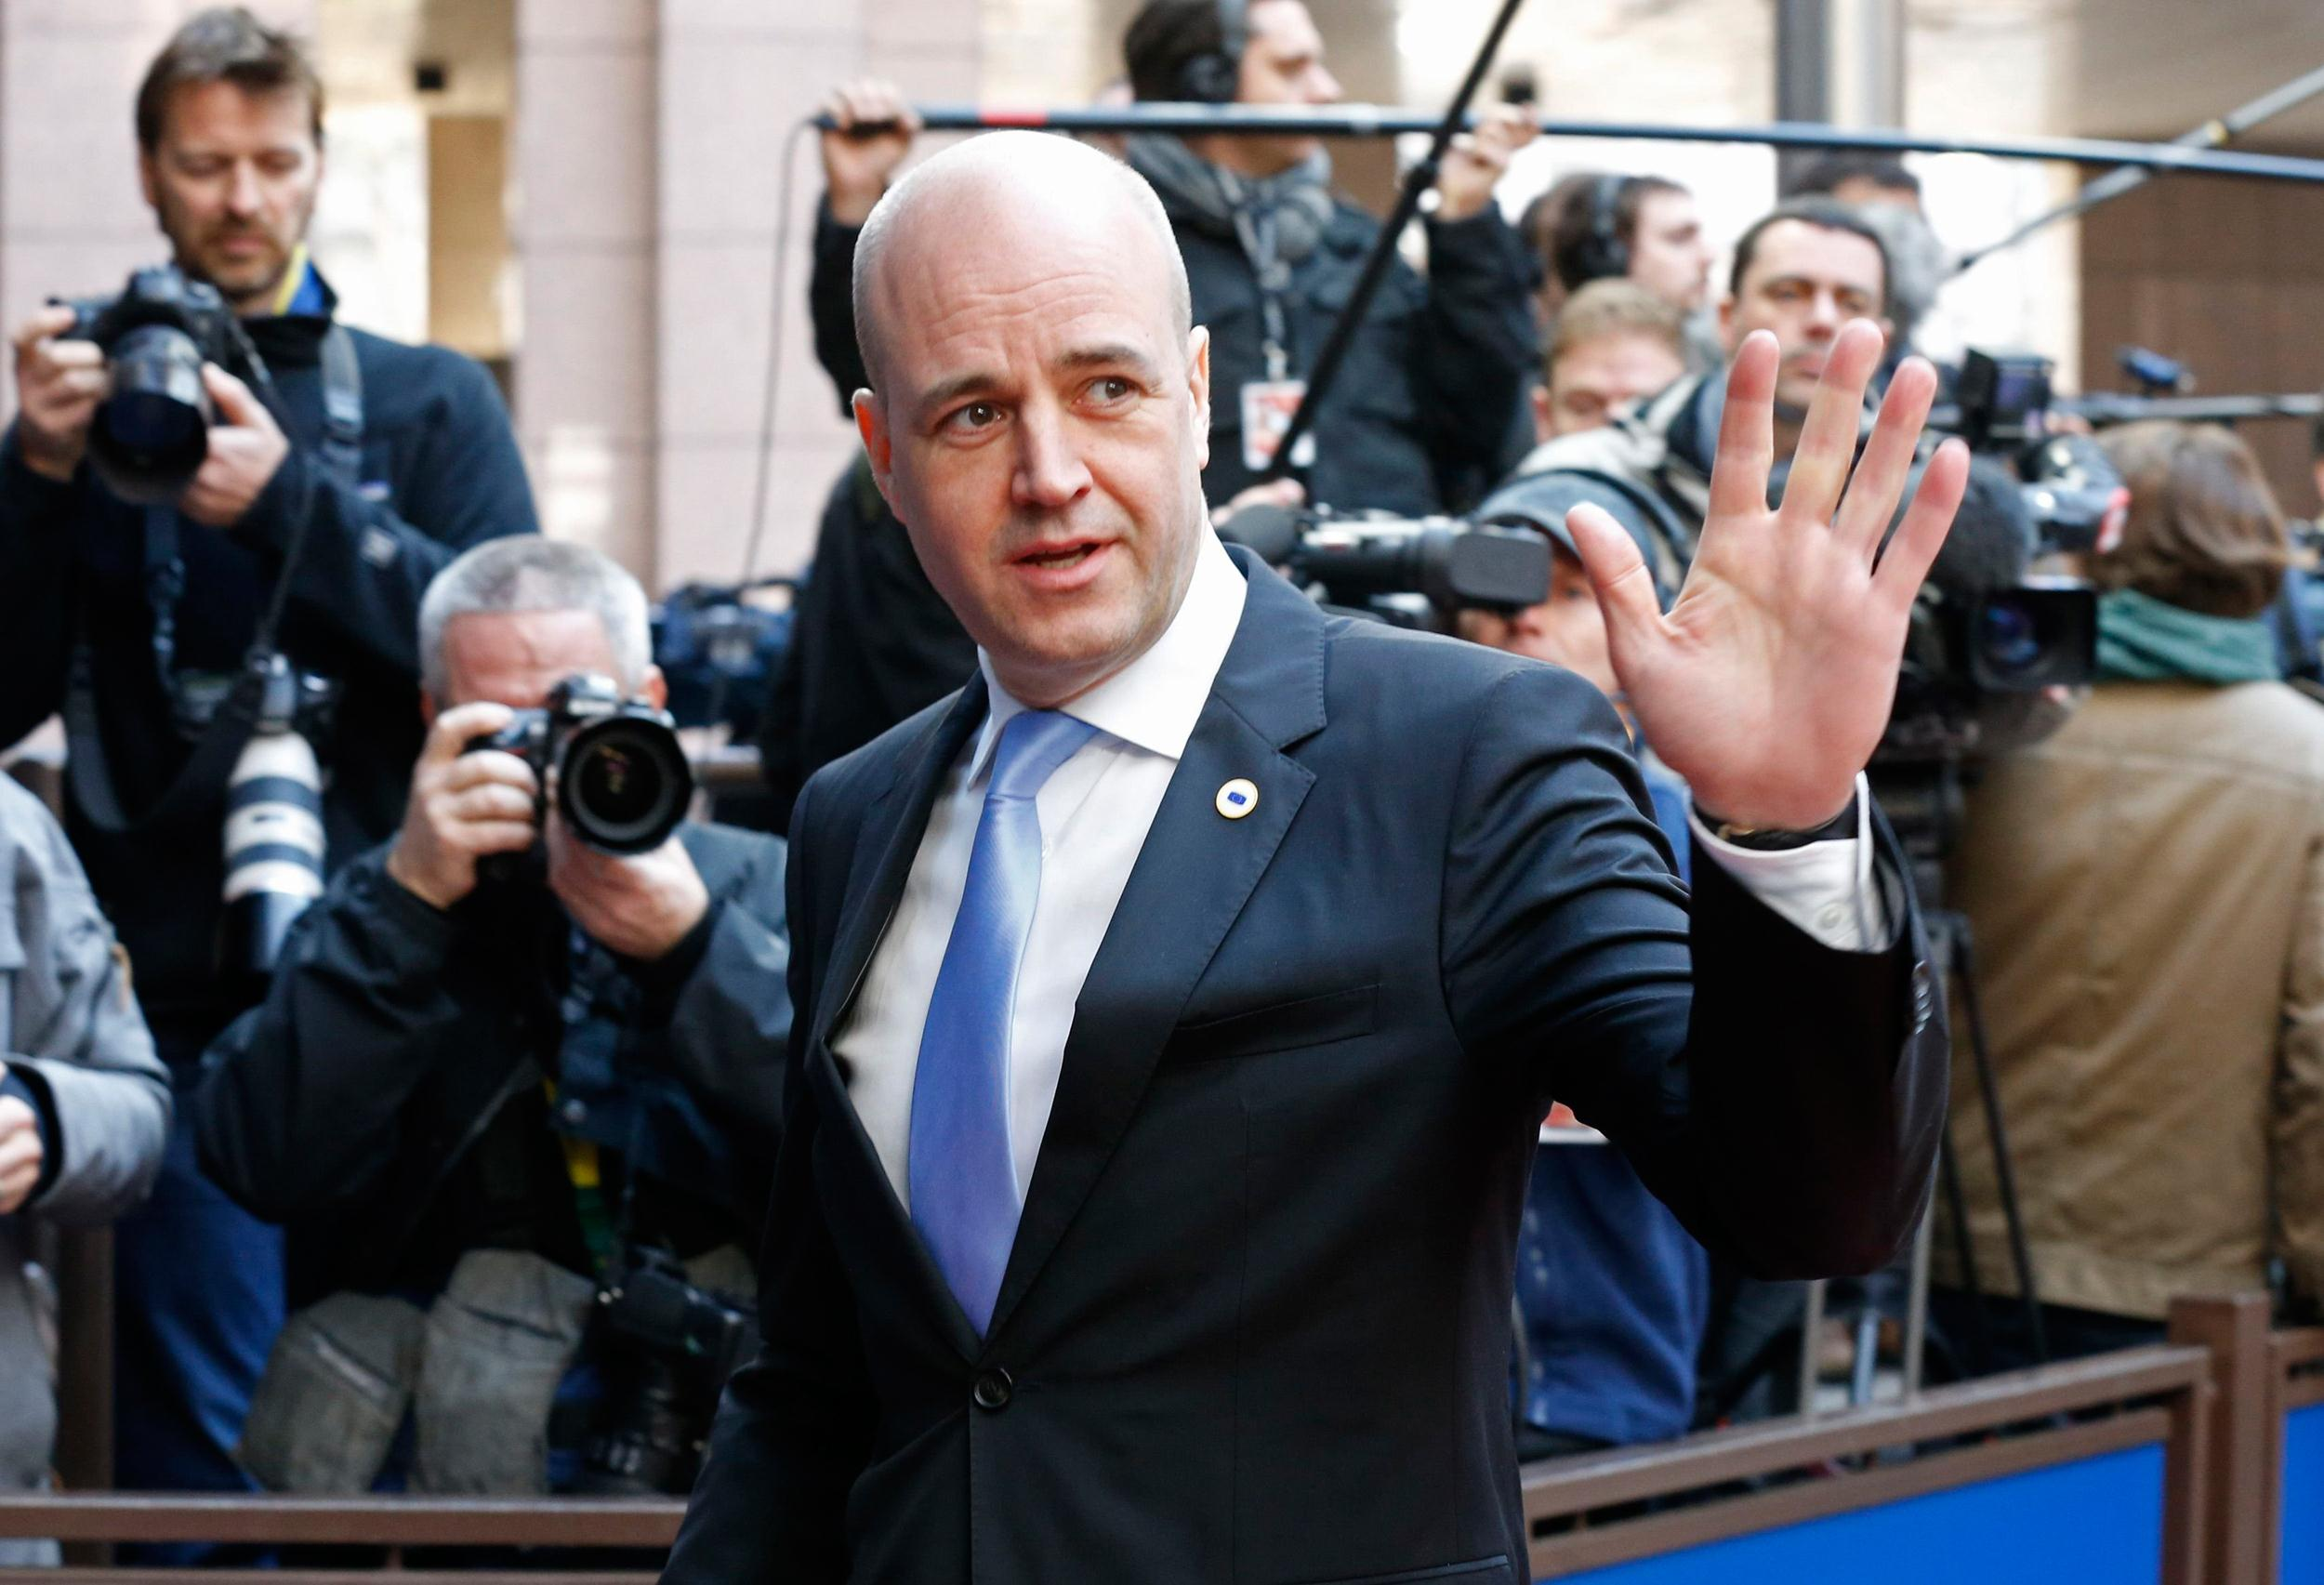 Image: Sweden's Prime Minister Fredrik Reinfeldt arrives at a European leaders emergency summit on the situation in Ukraine, in Brussels